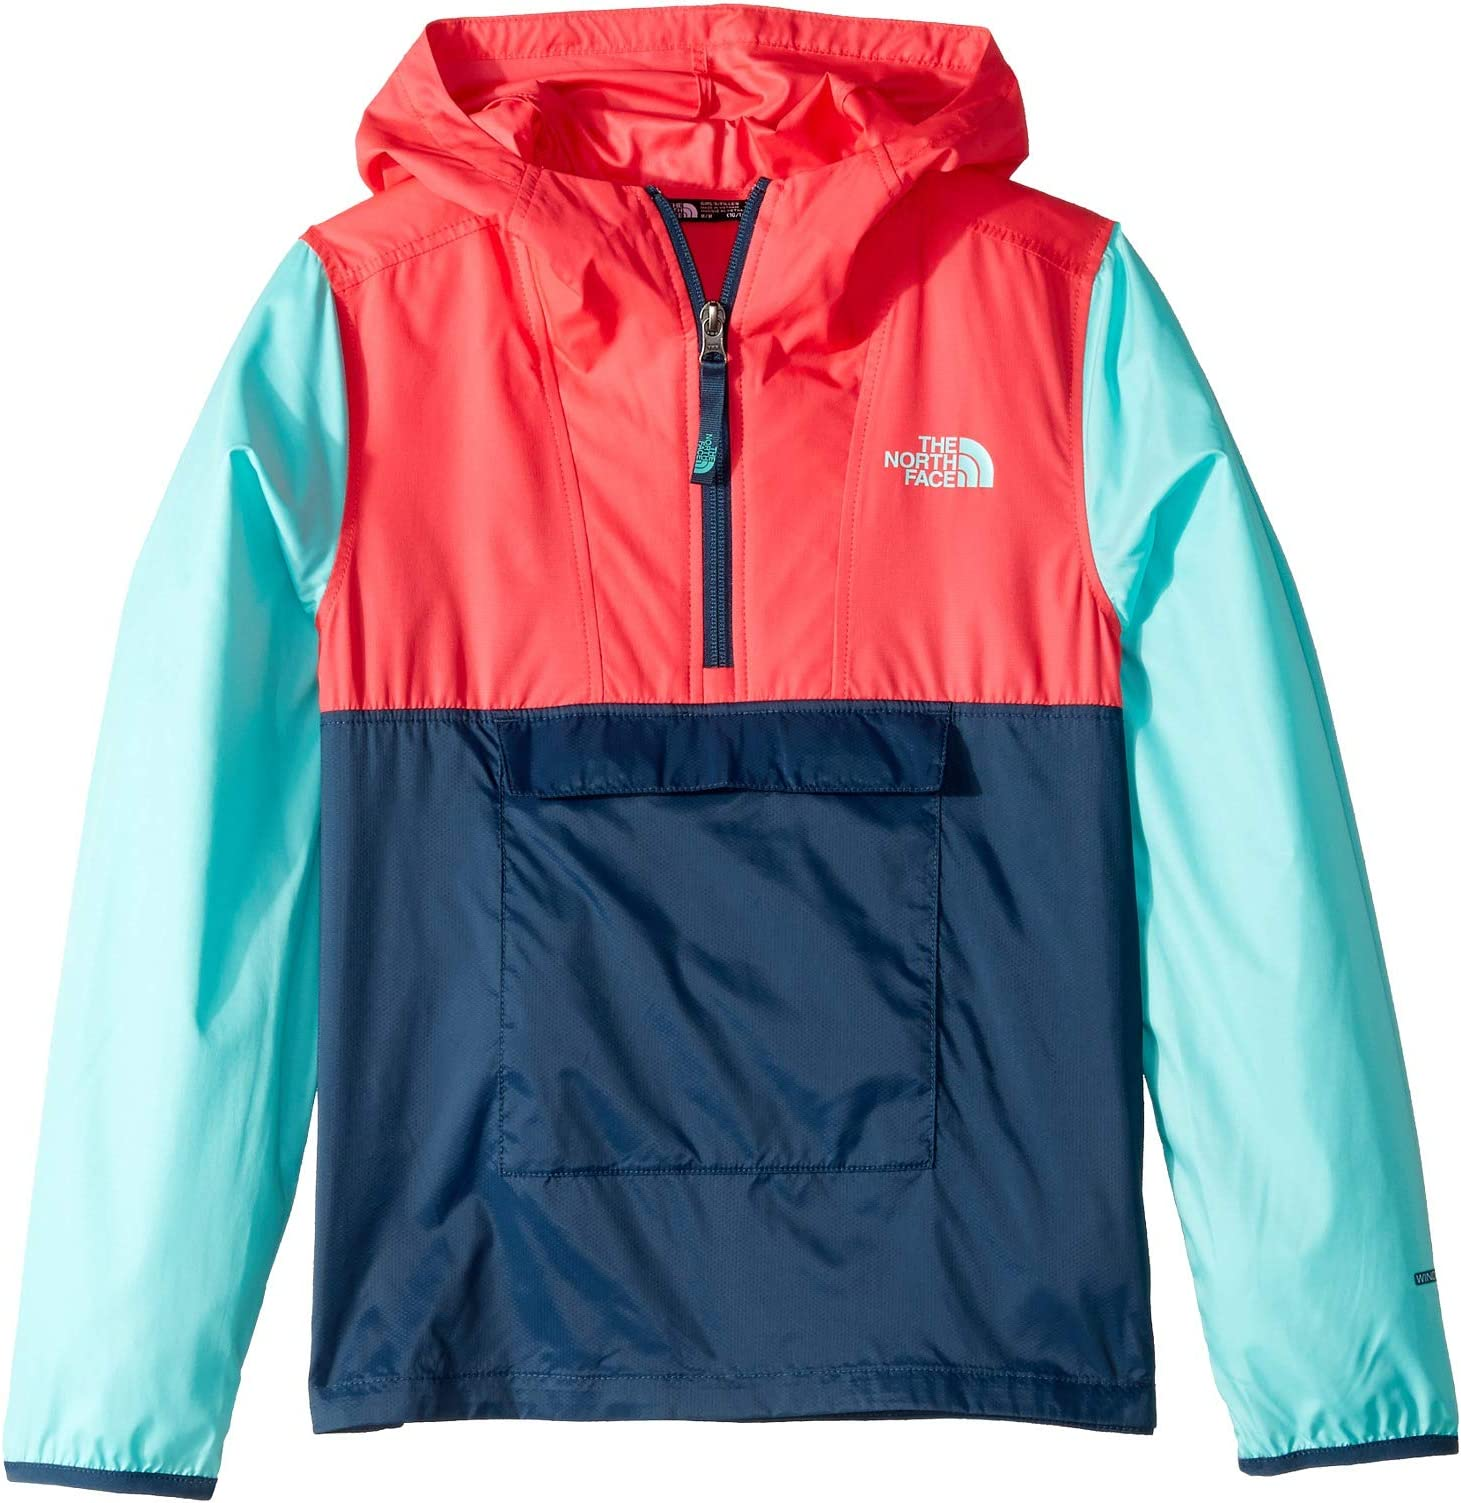 fab8e055a8fc55 The North Face Outerwear